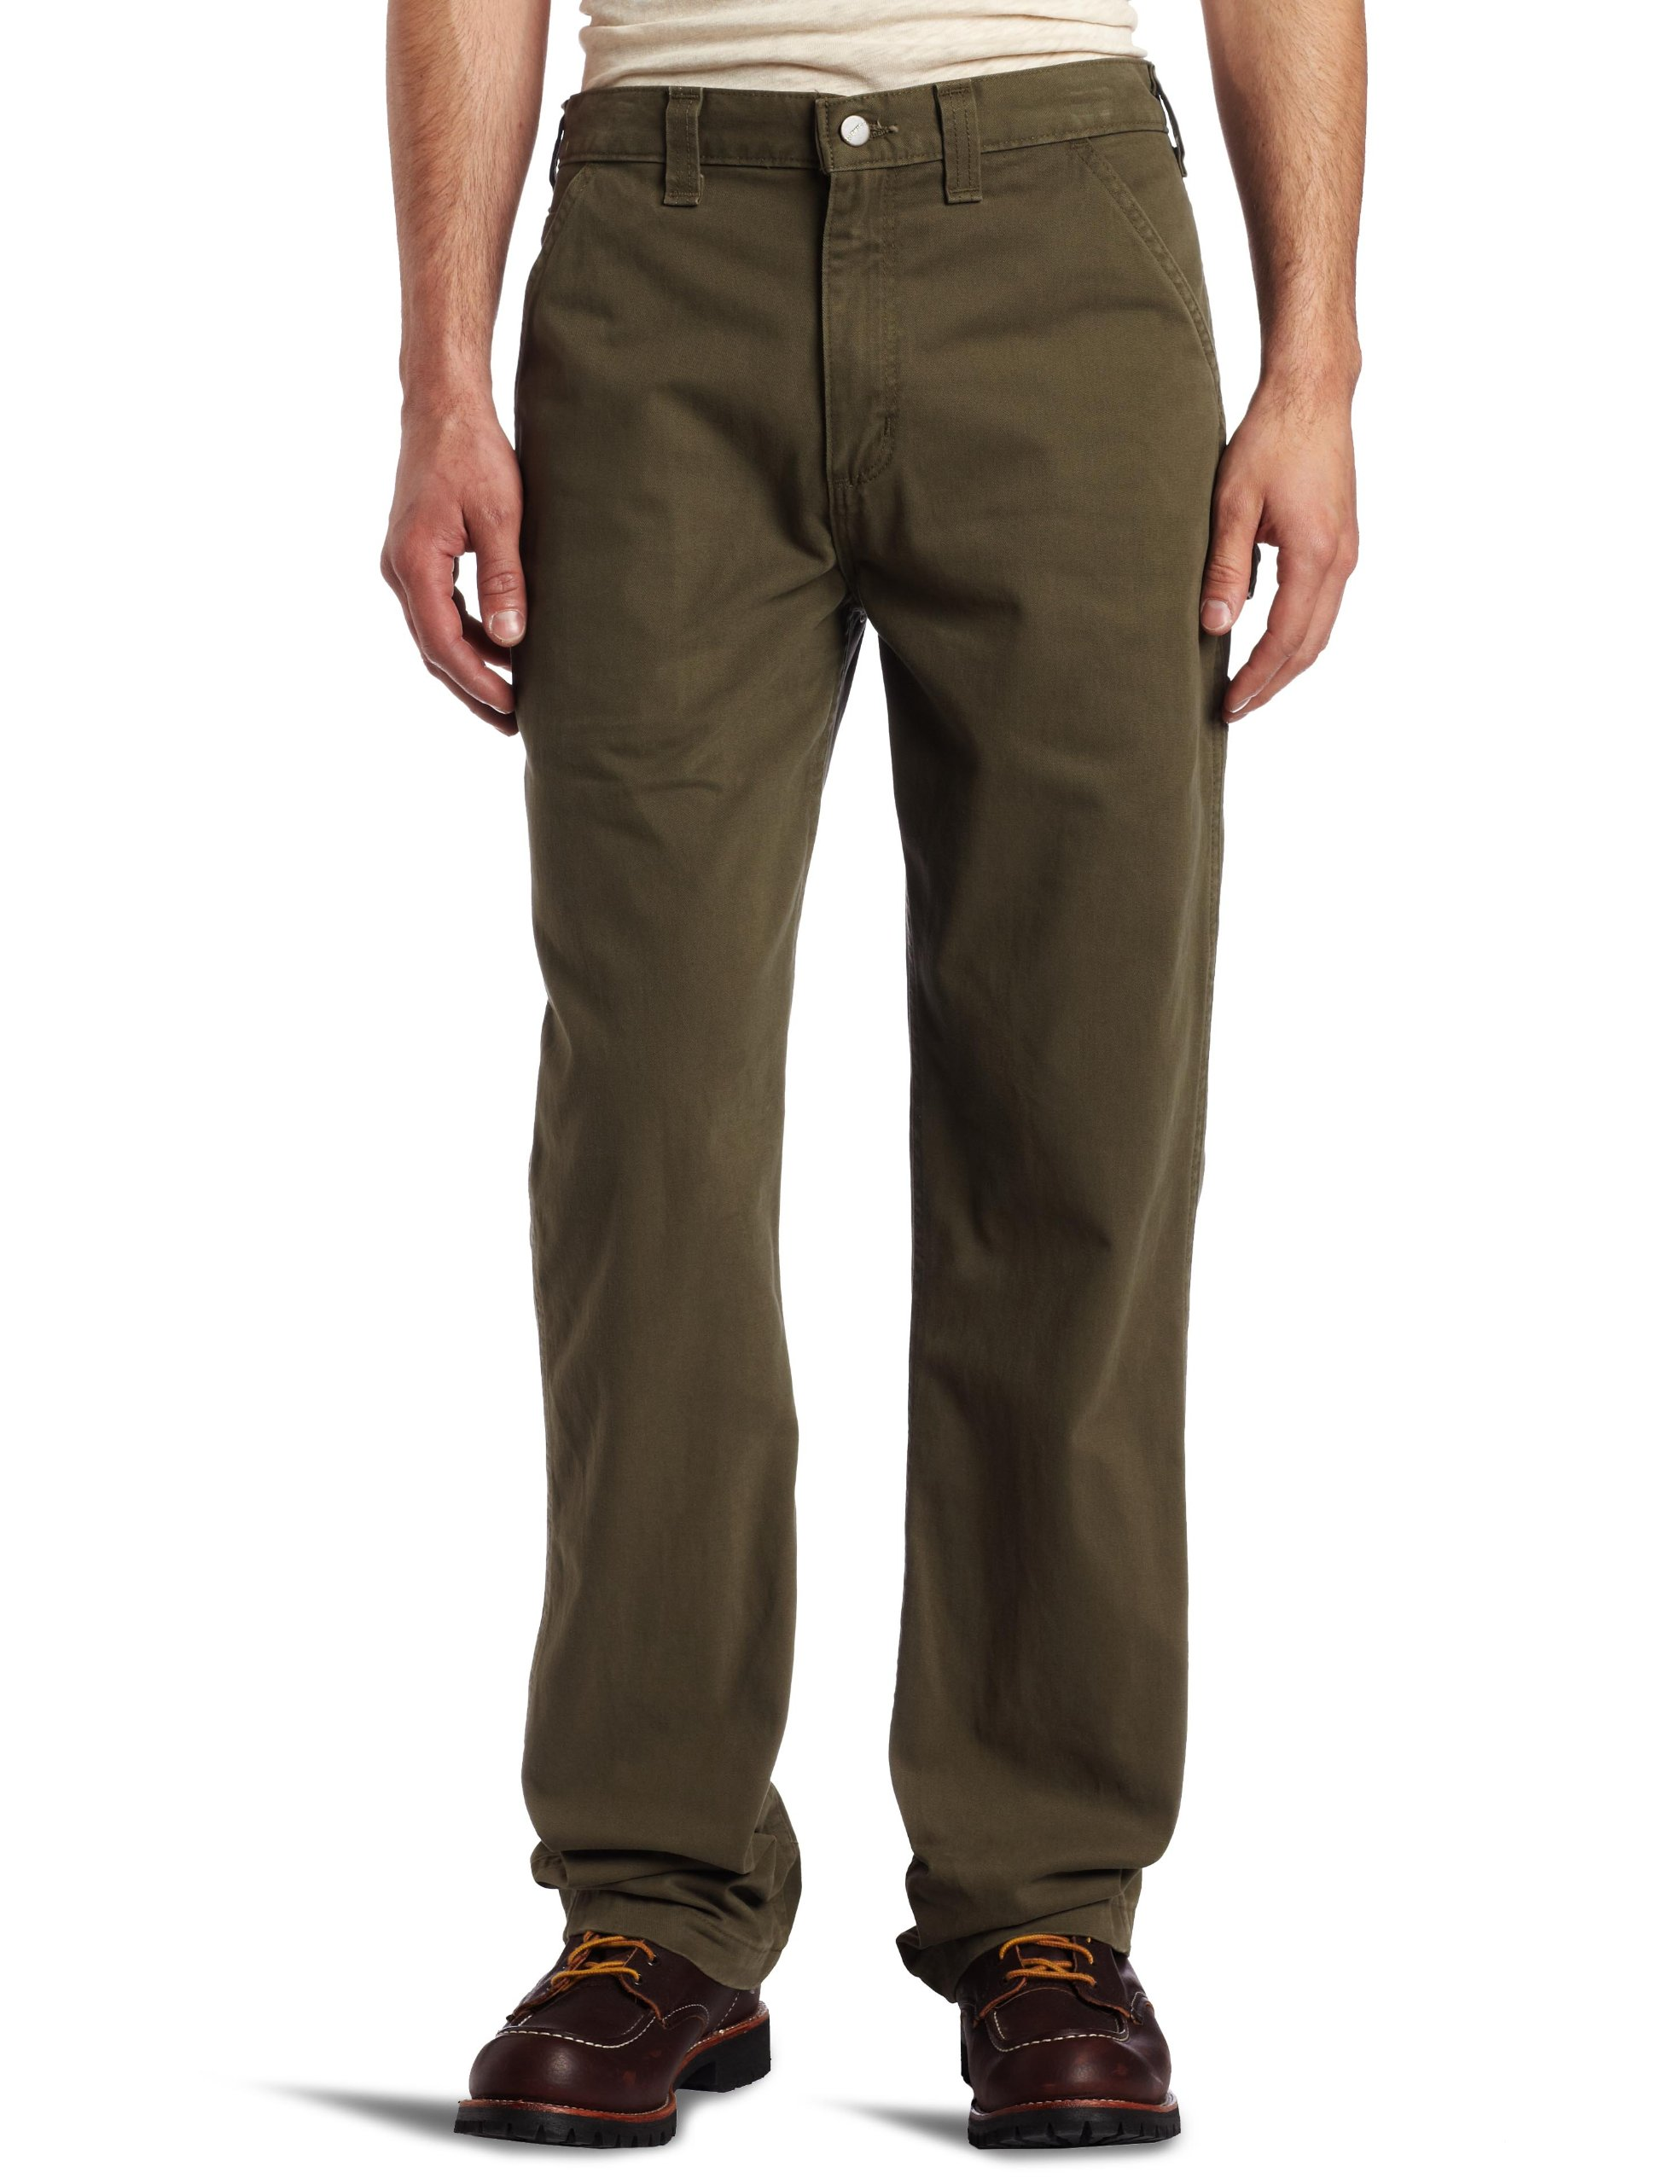 Carhartt Men's Relaxed Fit Washed Twill Dungaree Pant, Army Green, 42W x 30L by Carhartt